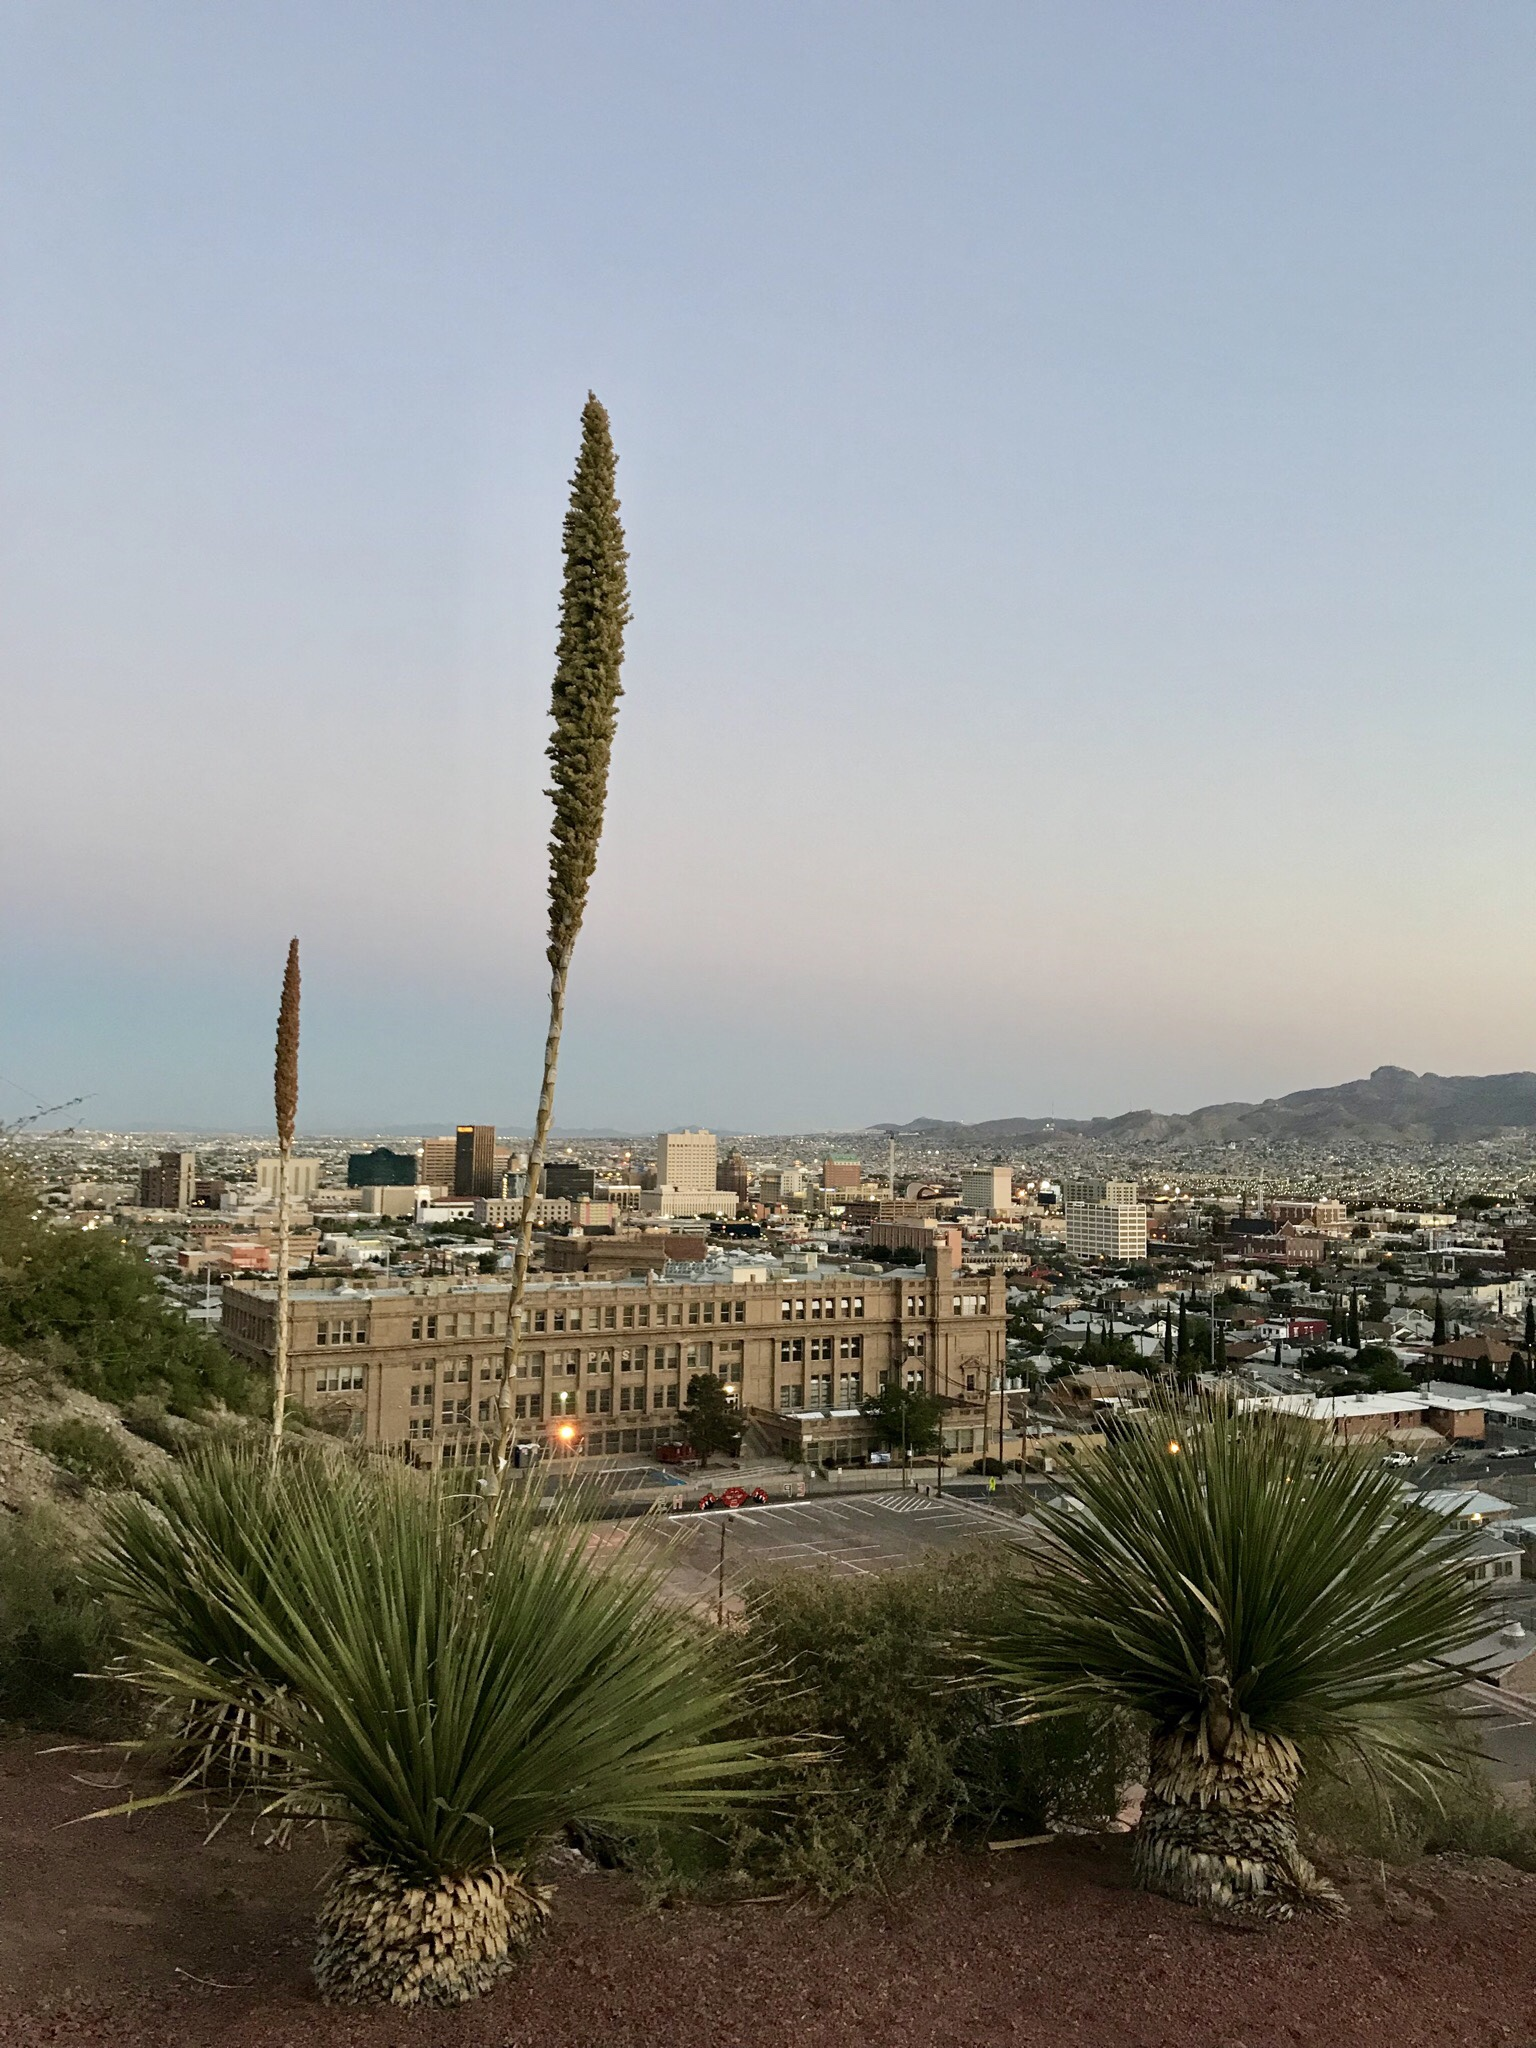 Peering toward the southeast over the ledge of a park up above downtown El Paso, TX at sunset.